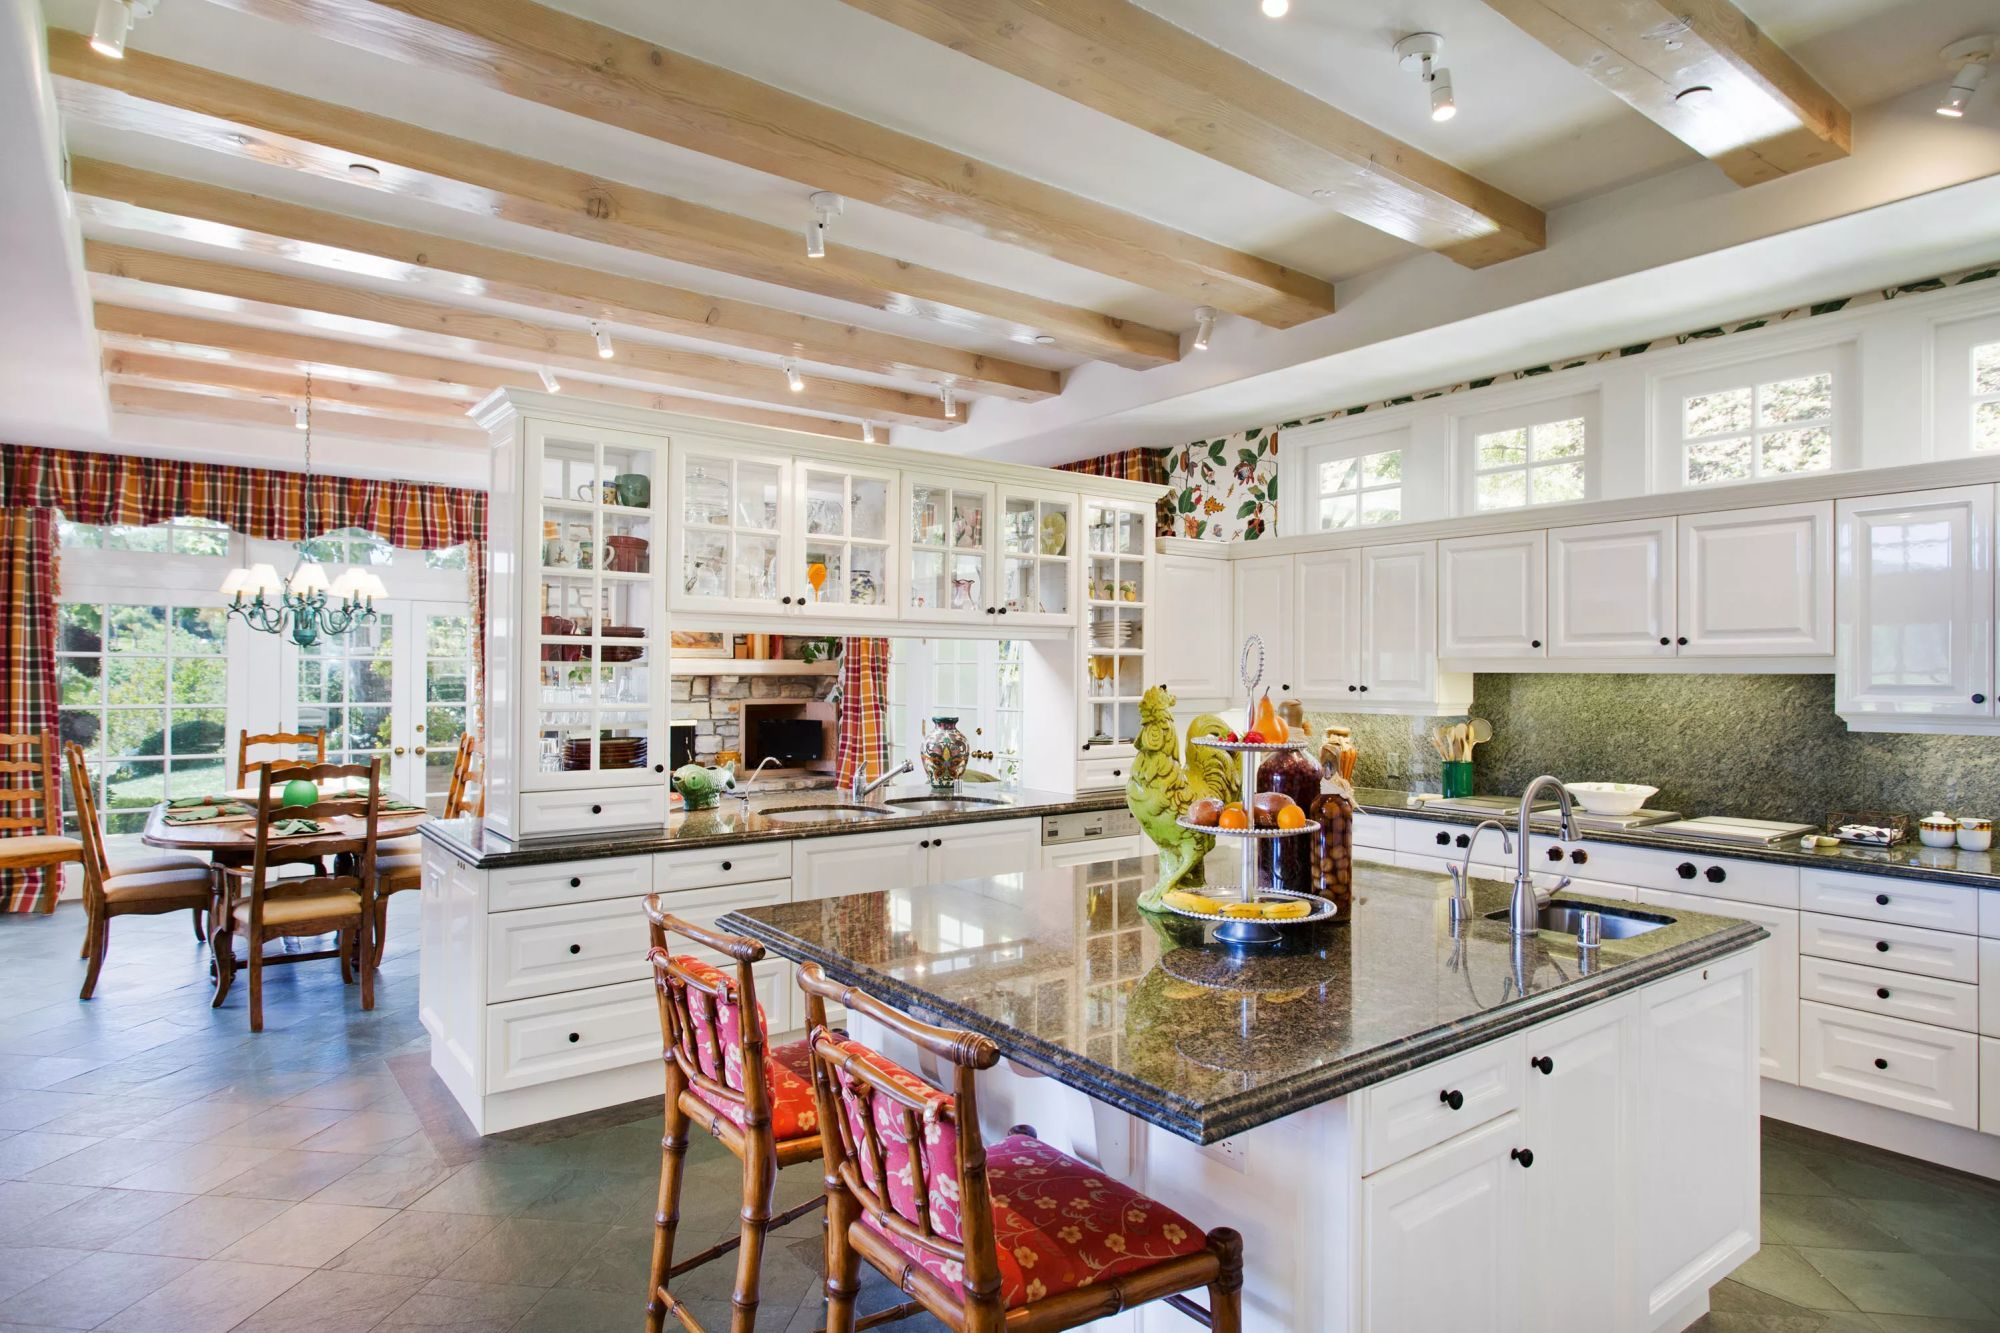 Village home interior design nciergeauctionsauctionslakeviewcanyonroad